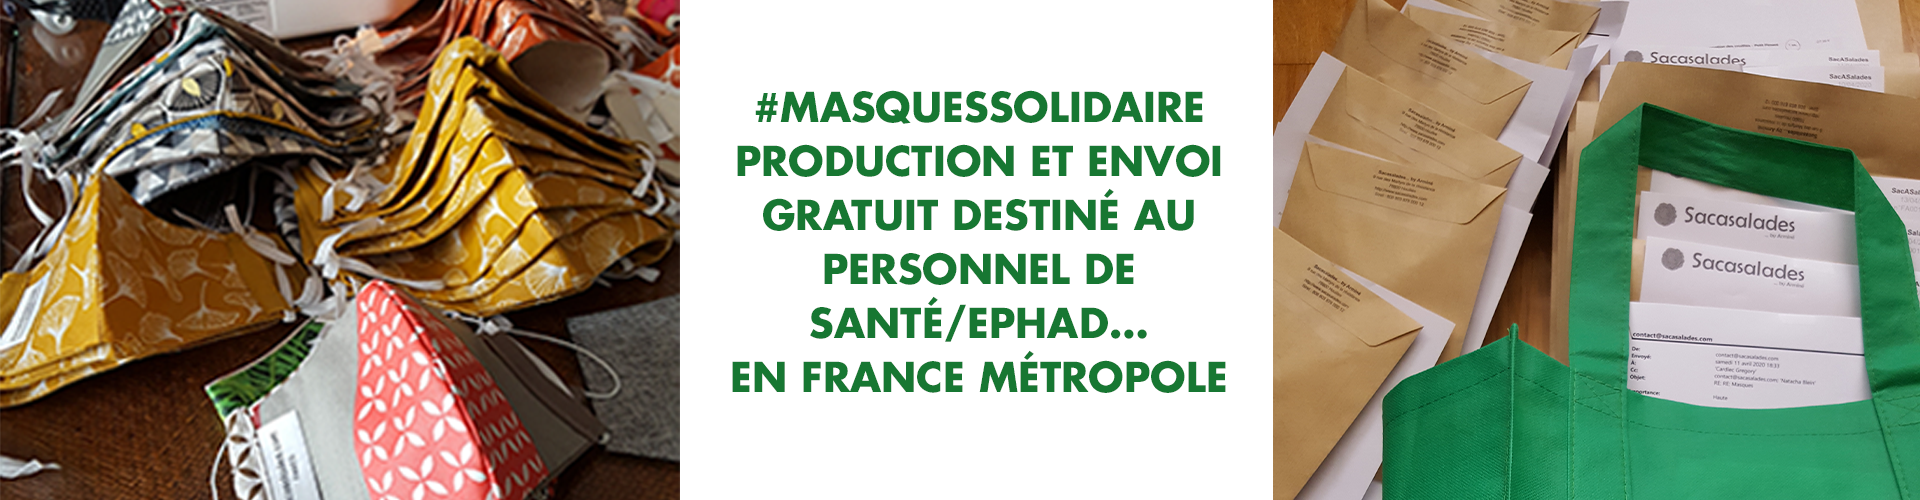 Masquesolidaire